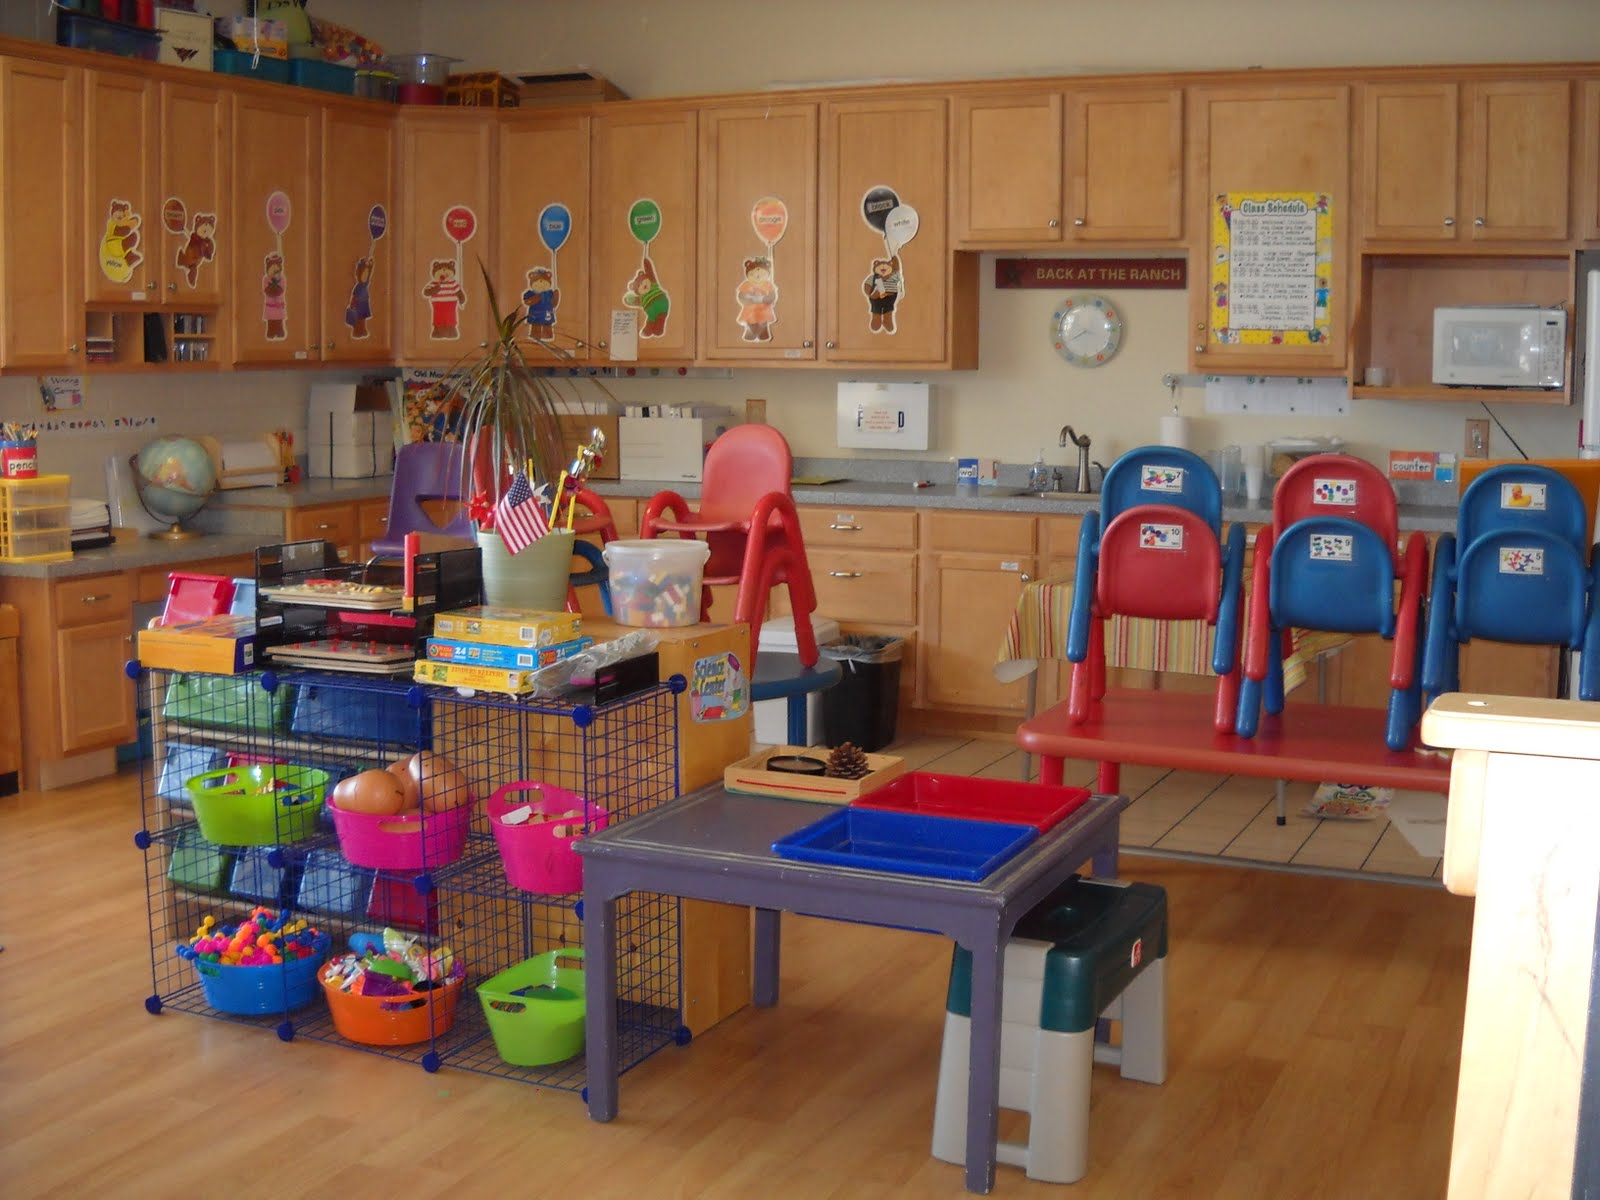 Preschool Classroom Arrangement Ideas | Decorations To Make